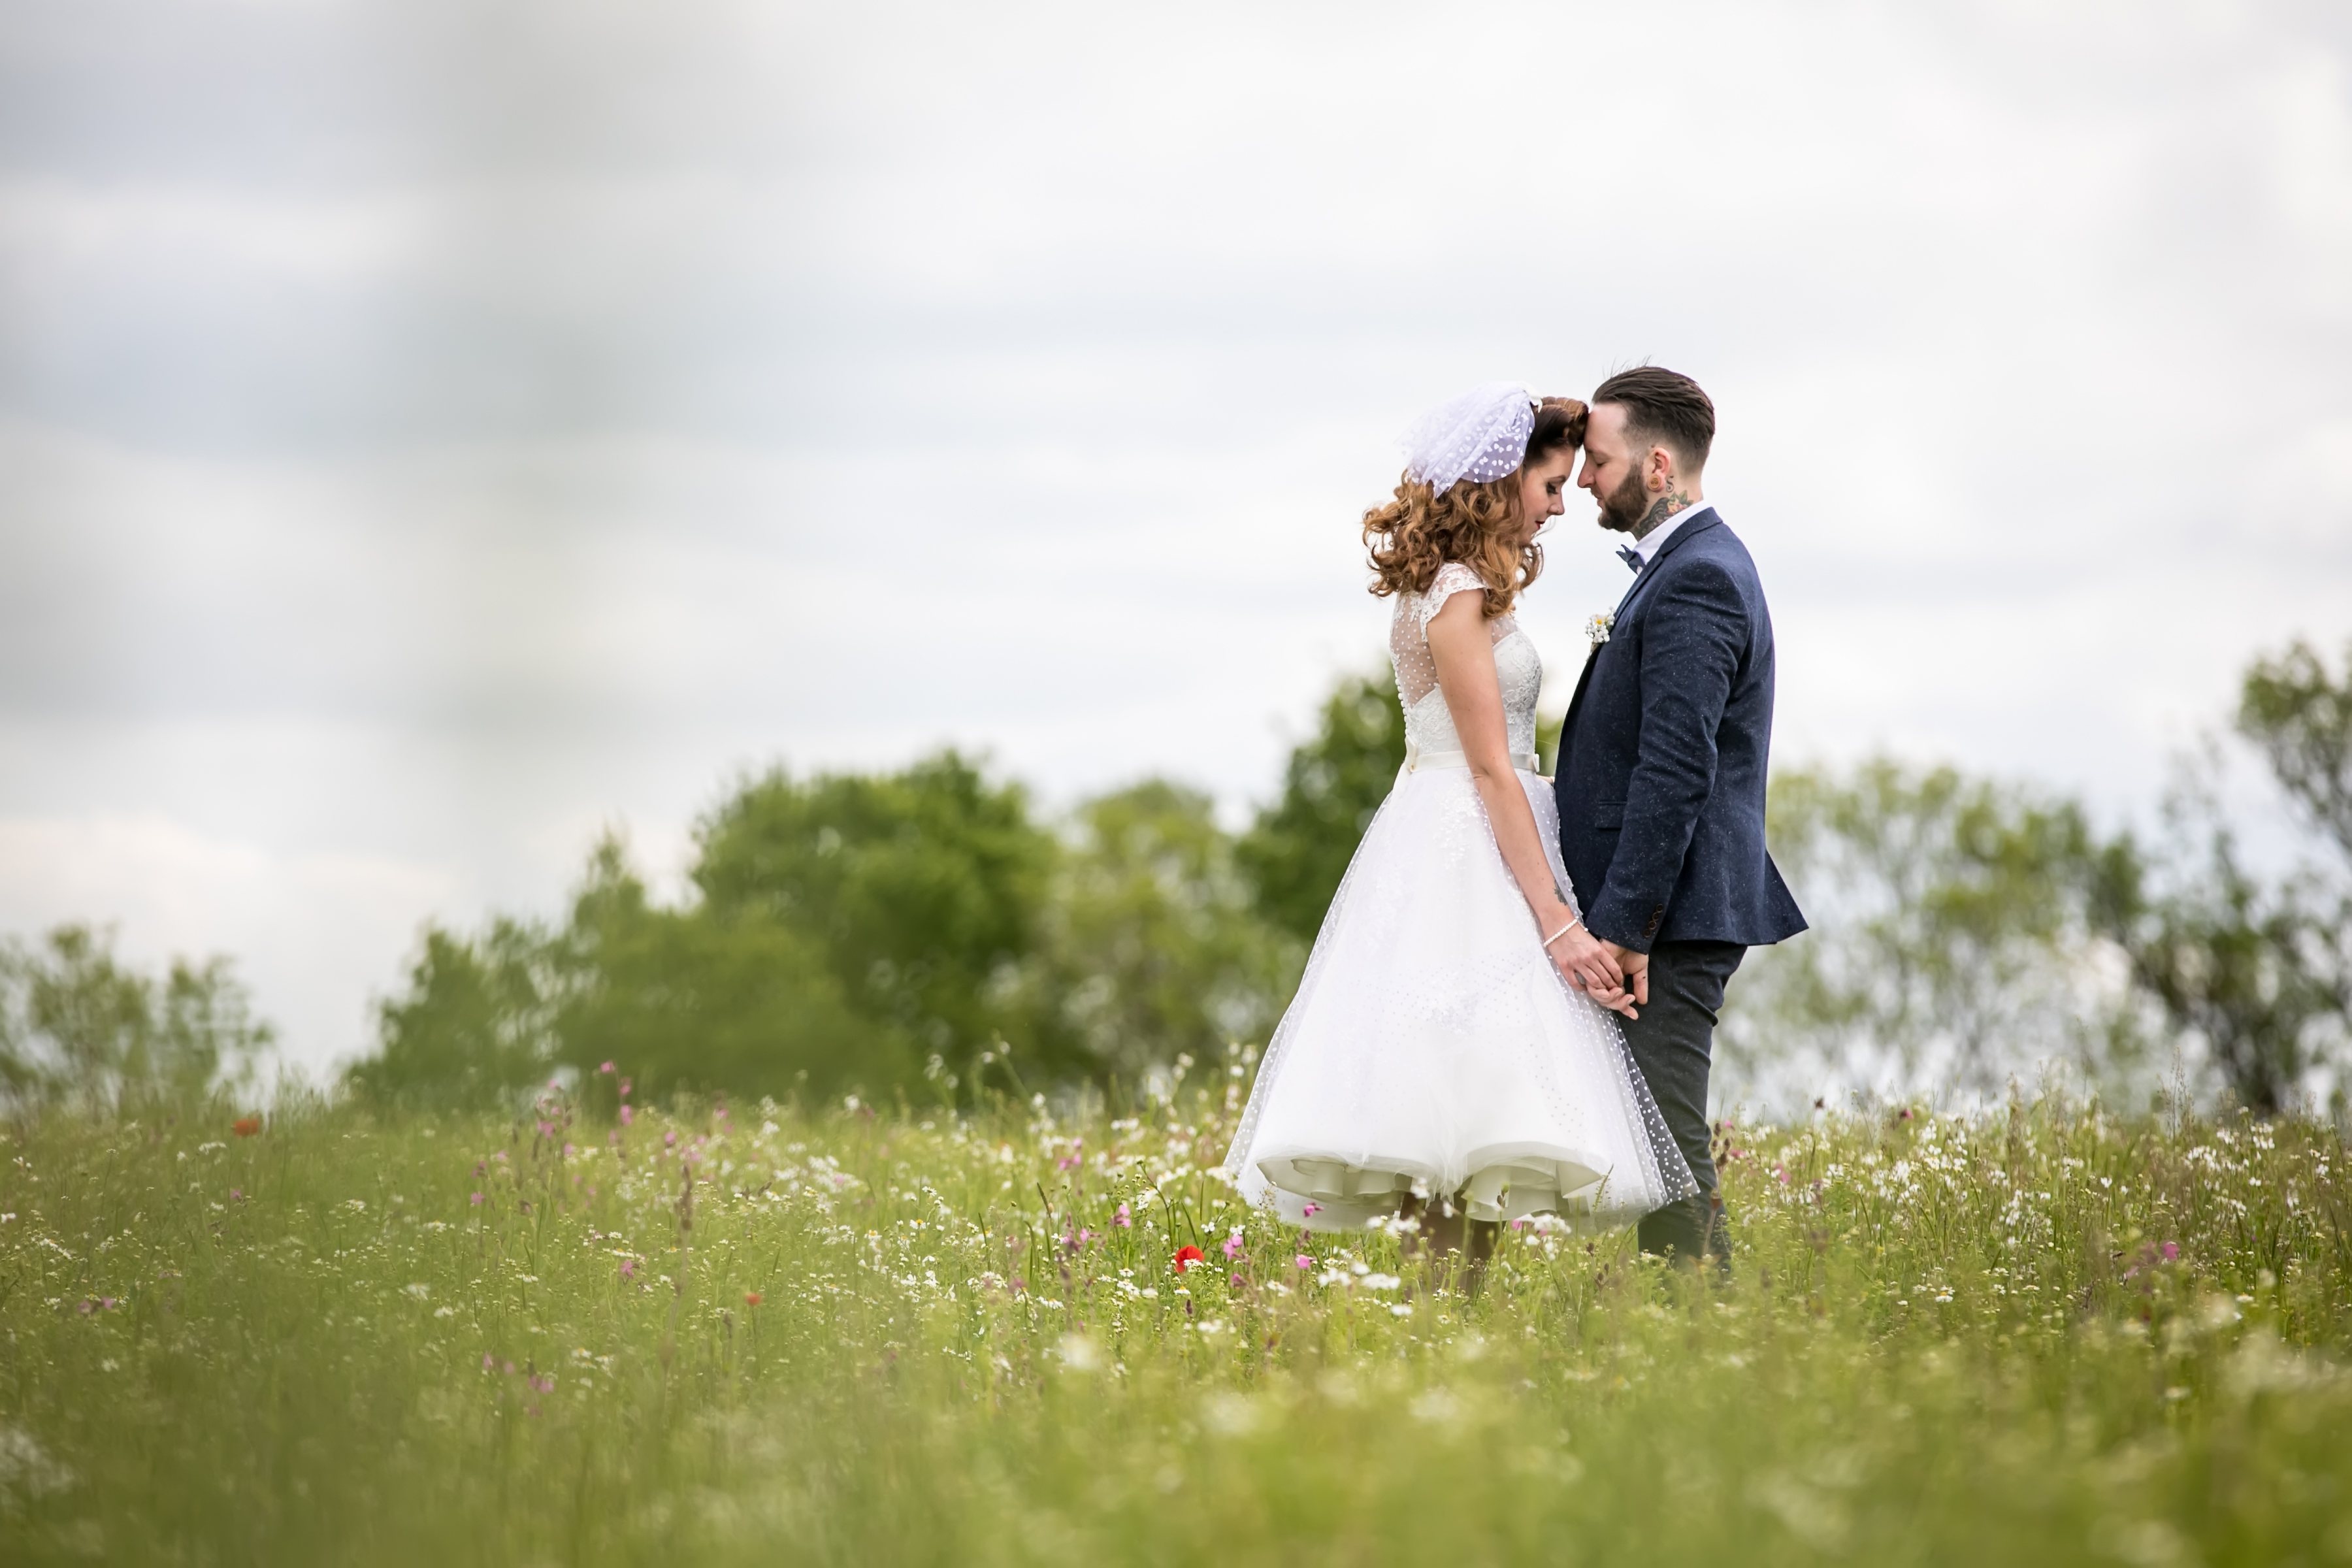 WetheleManorJadeScottWedding-SaraBeaumontPhotography(10340of662)-2